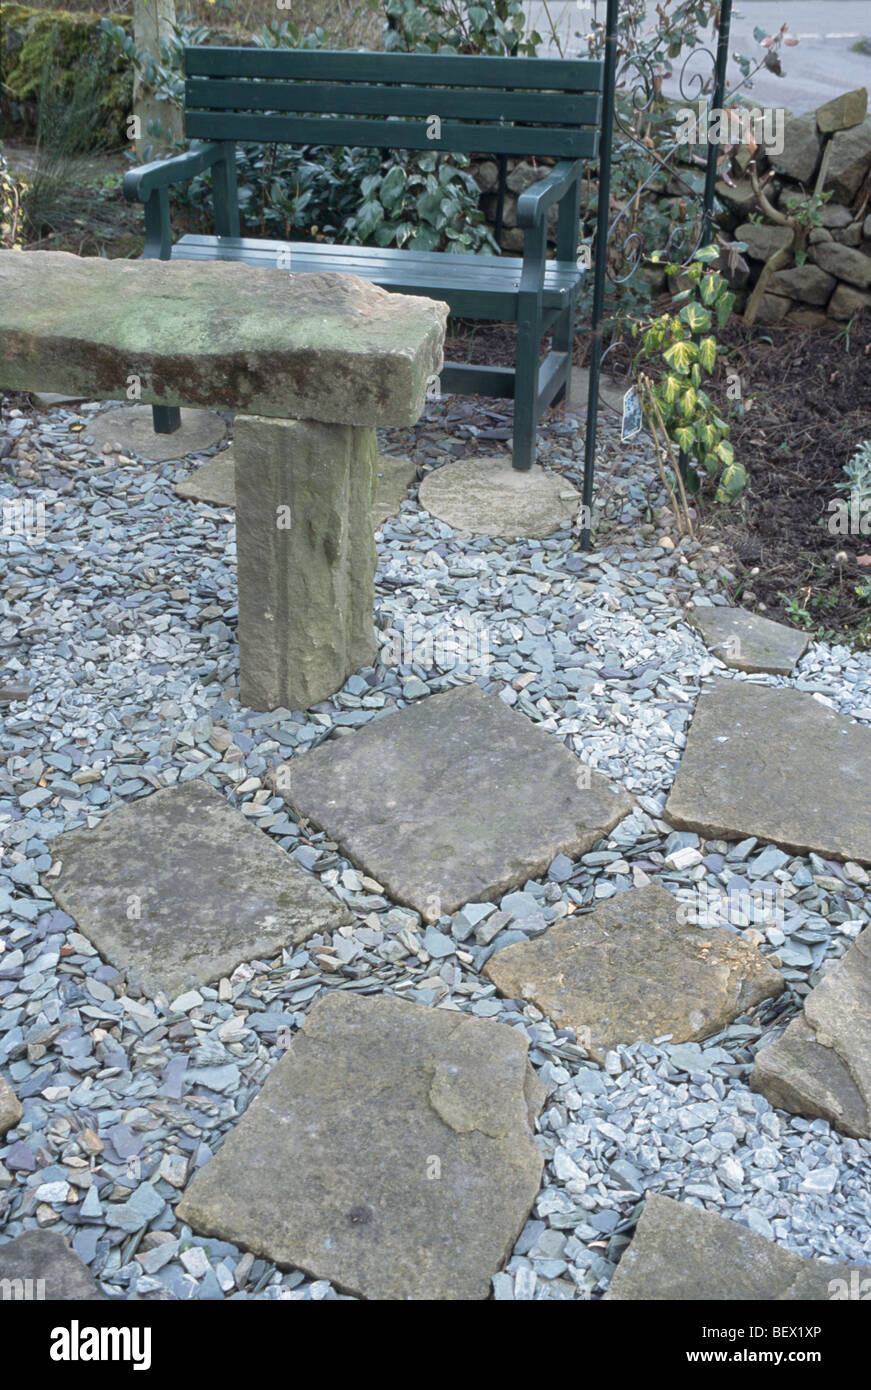 Rustic Stone Table And Metal Bench On Gravel Patio With Stone Paving Slabs  In Small Front Garden